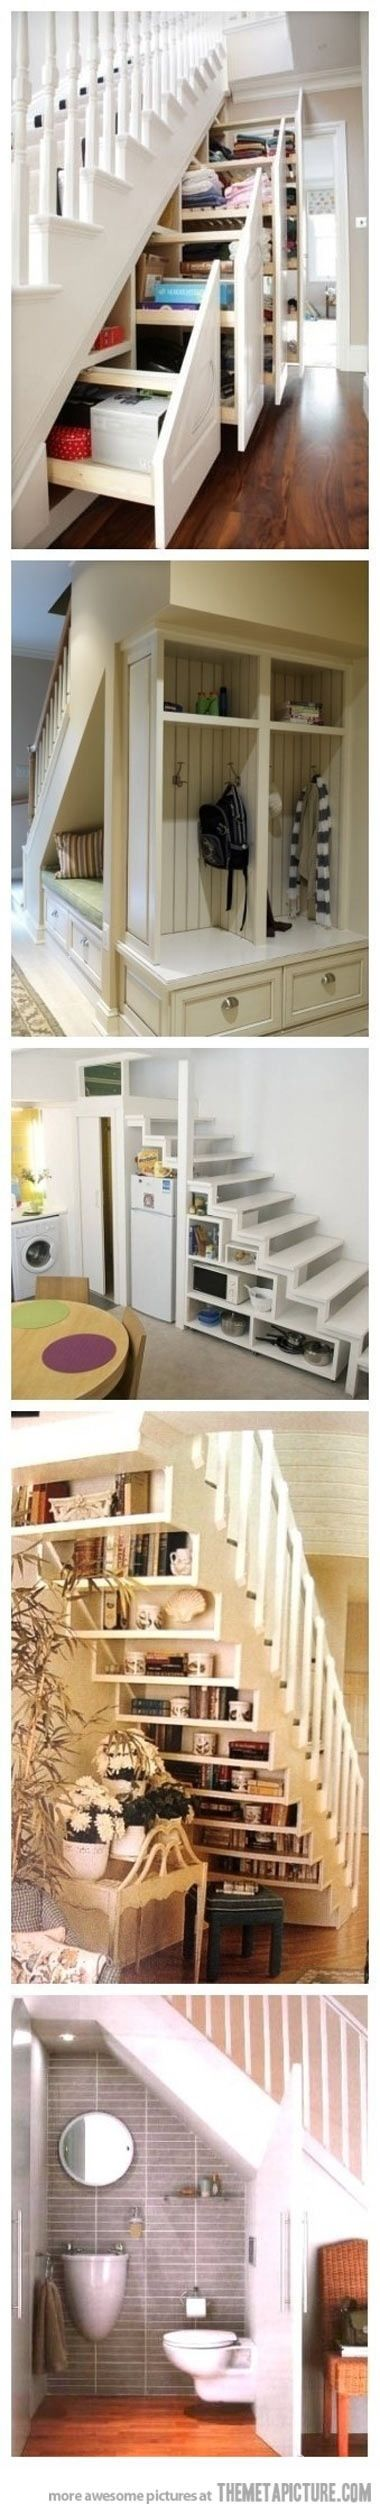 I love the use of under the stairs.... not sure what hitch is most appropriate for the area though